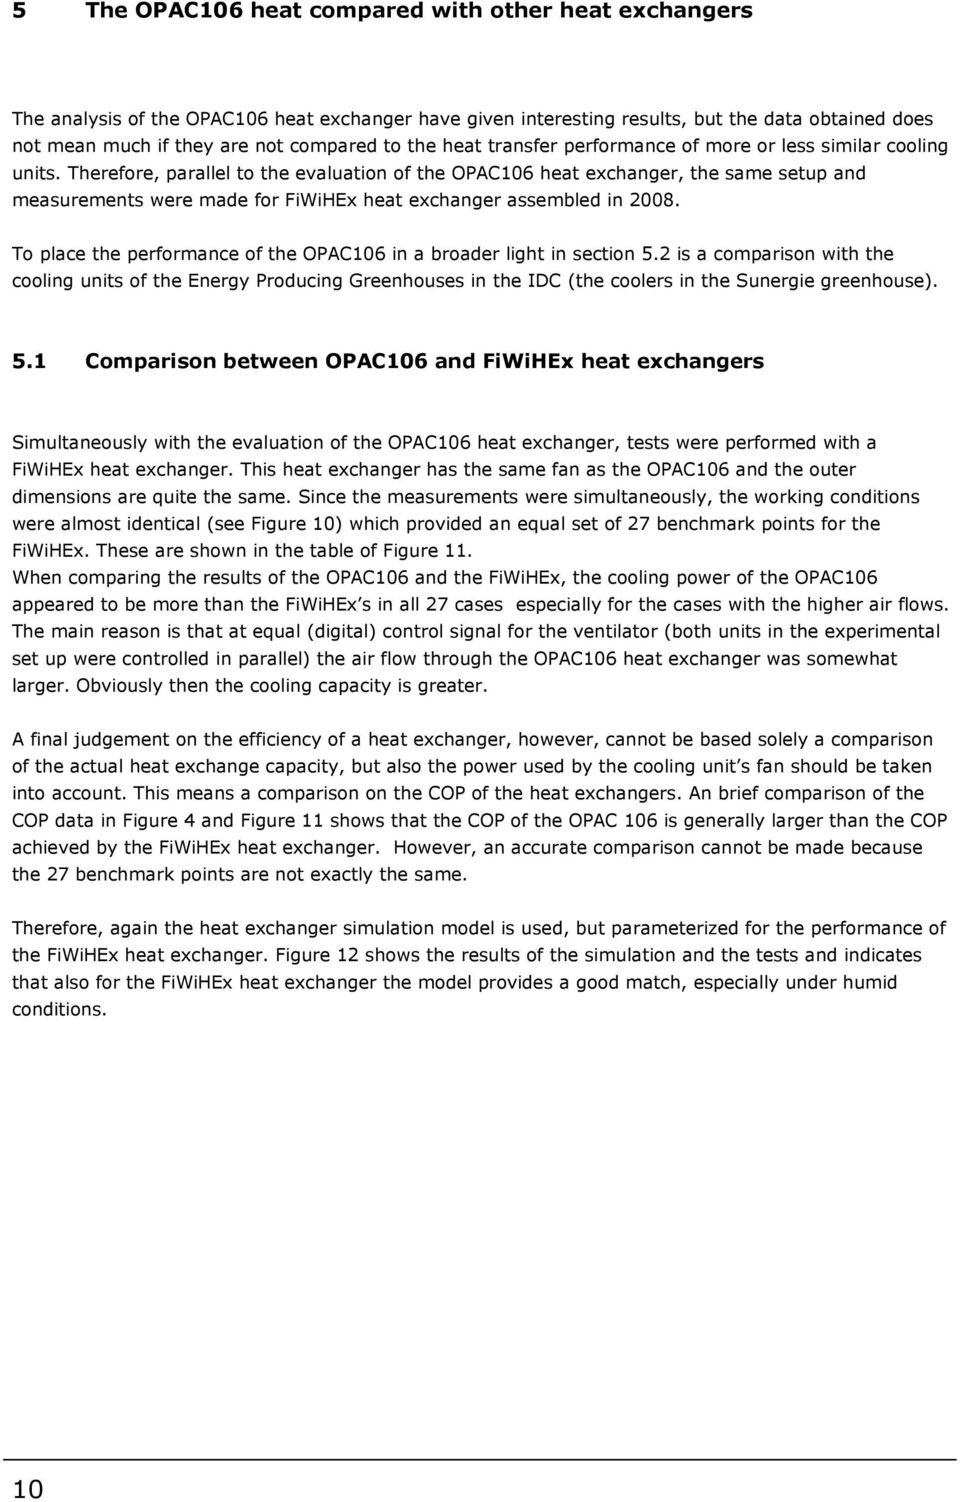 Therefore, parallel to the evaluation of the OPAC106 heat exchanger, the same setup and measurements were made for FiWiHEx heat exchanger assembled in 2008.